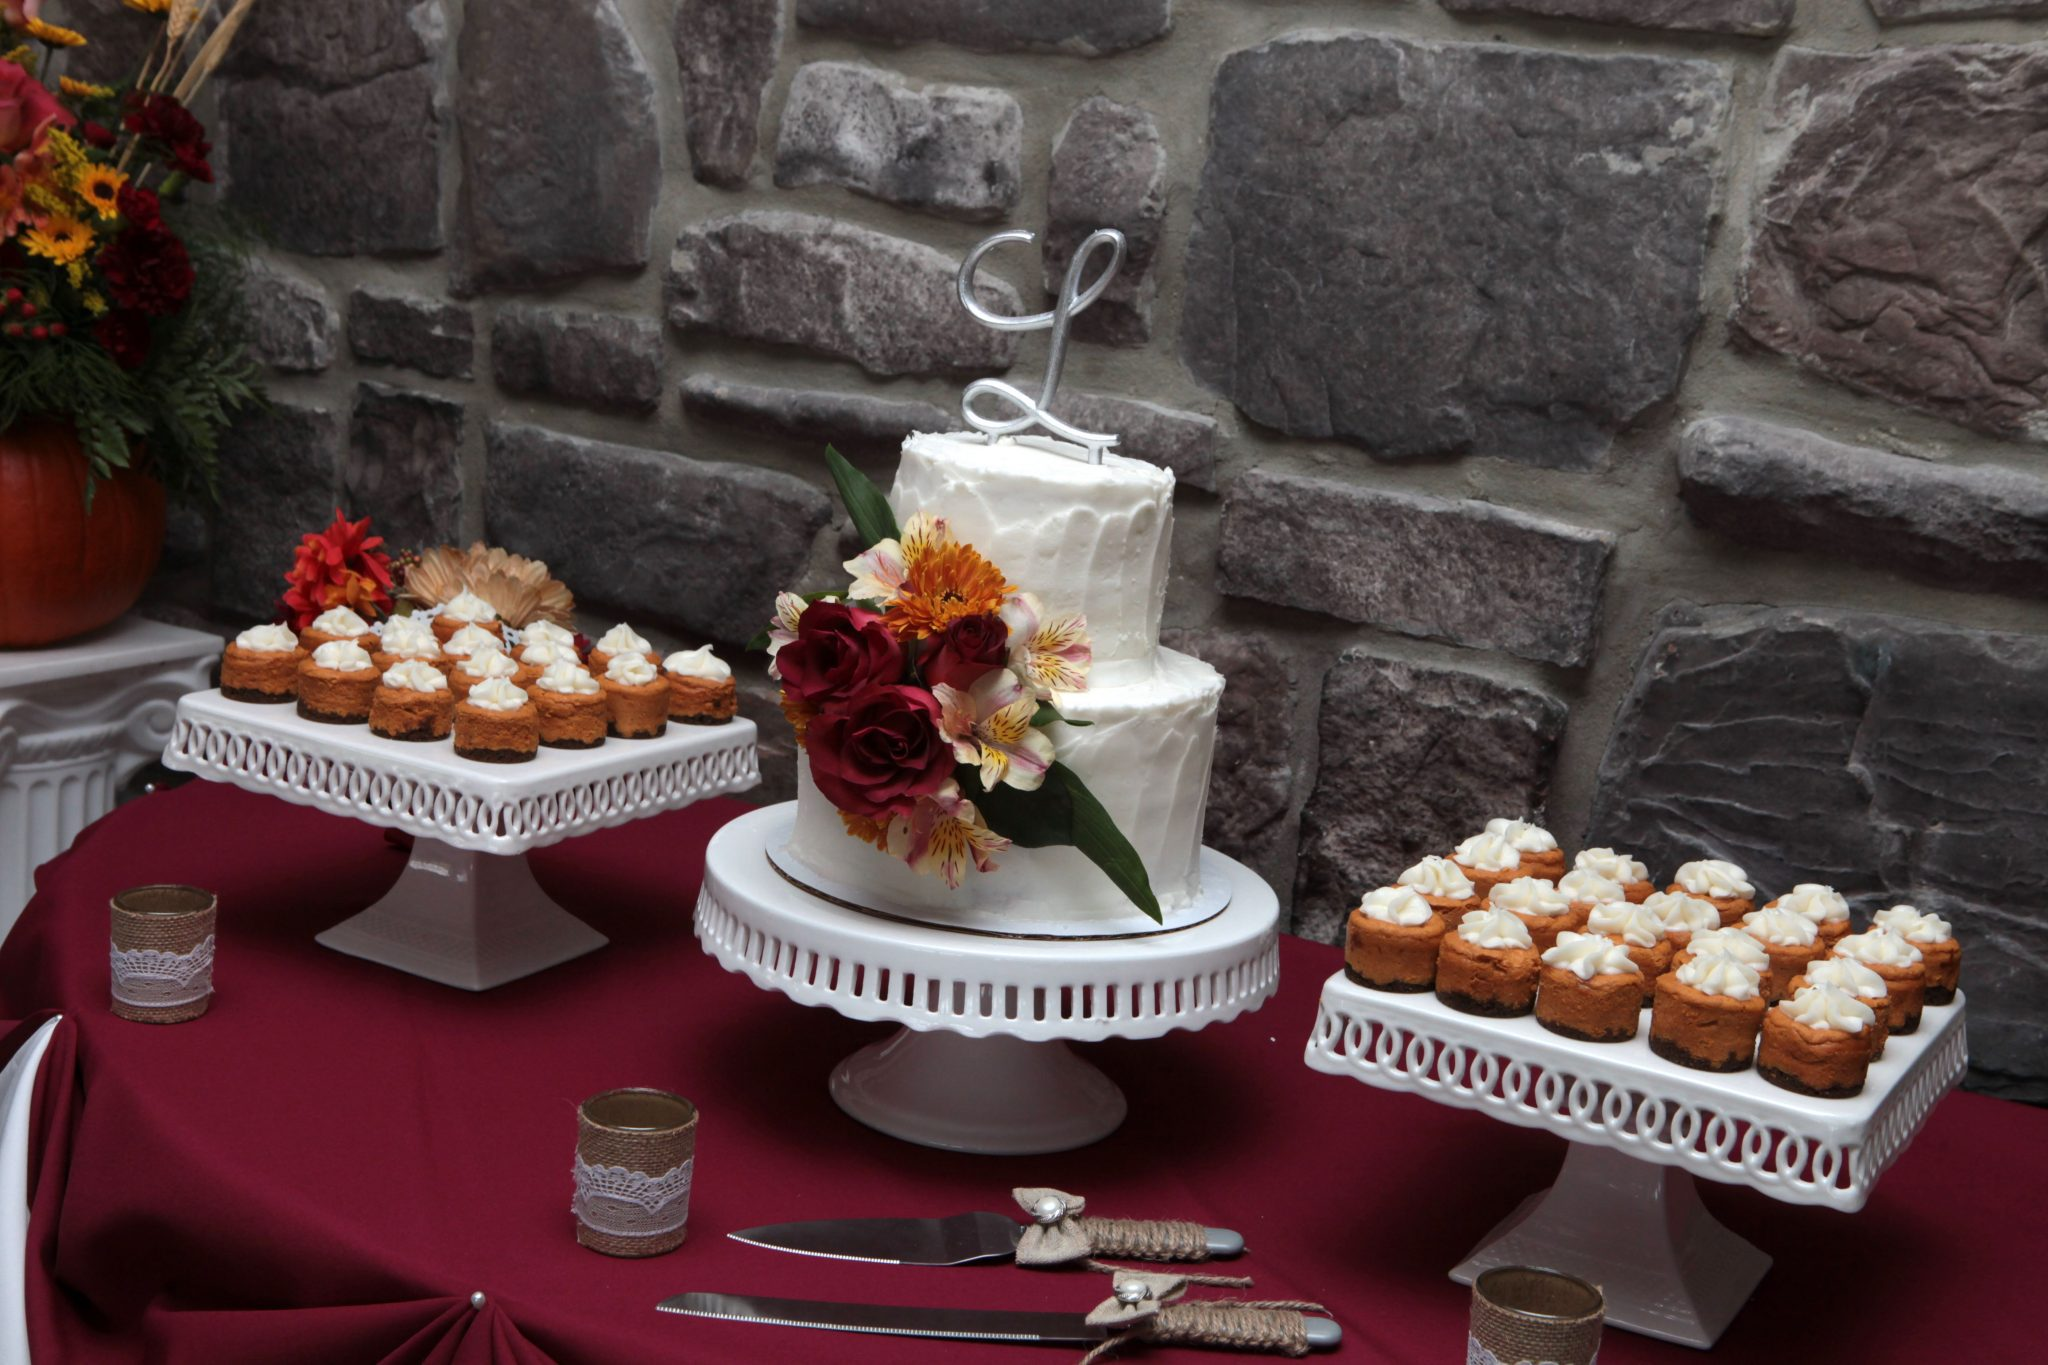 October wedding ideas combining wedding cake with cupcakes